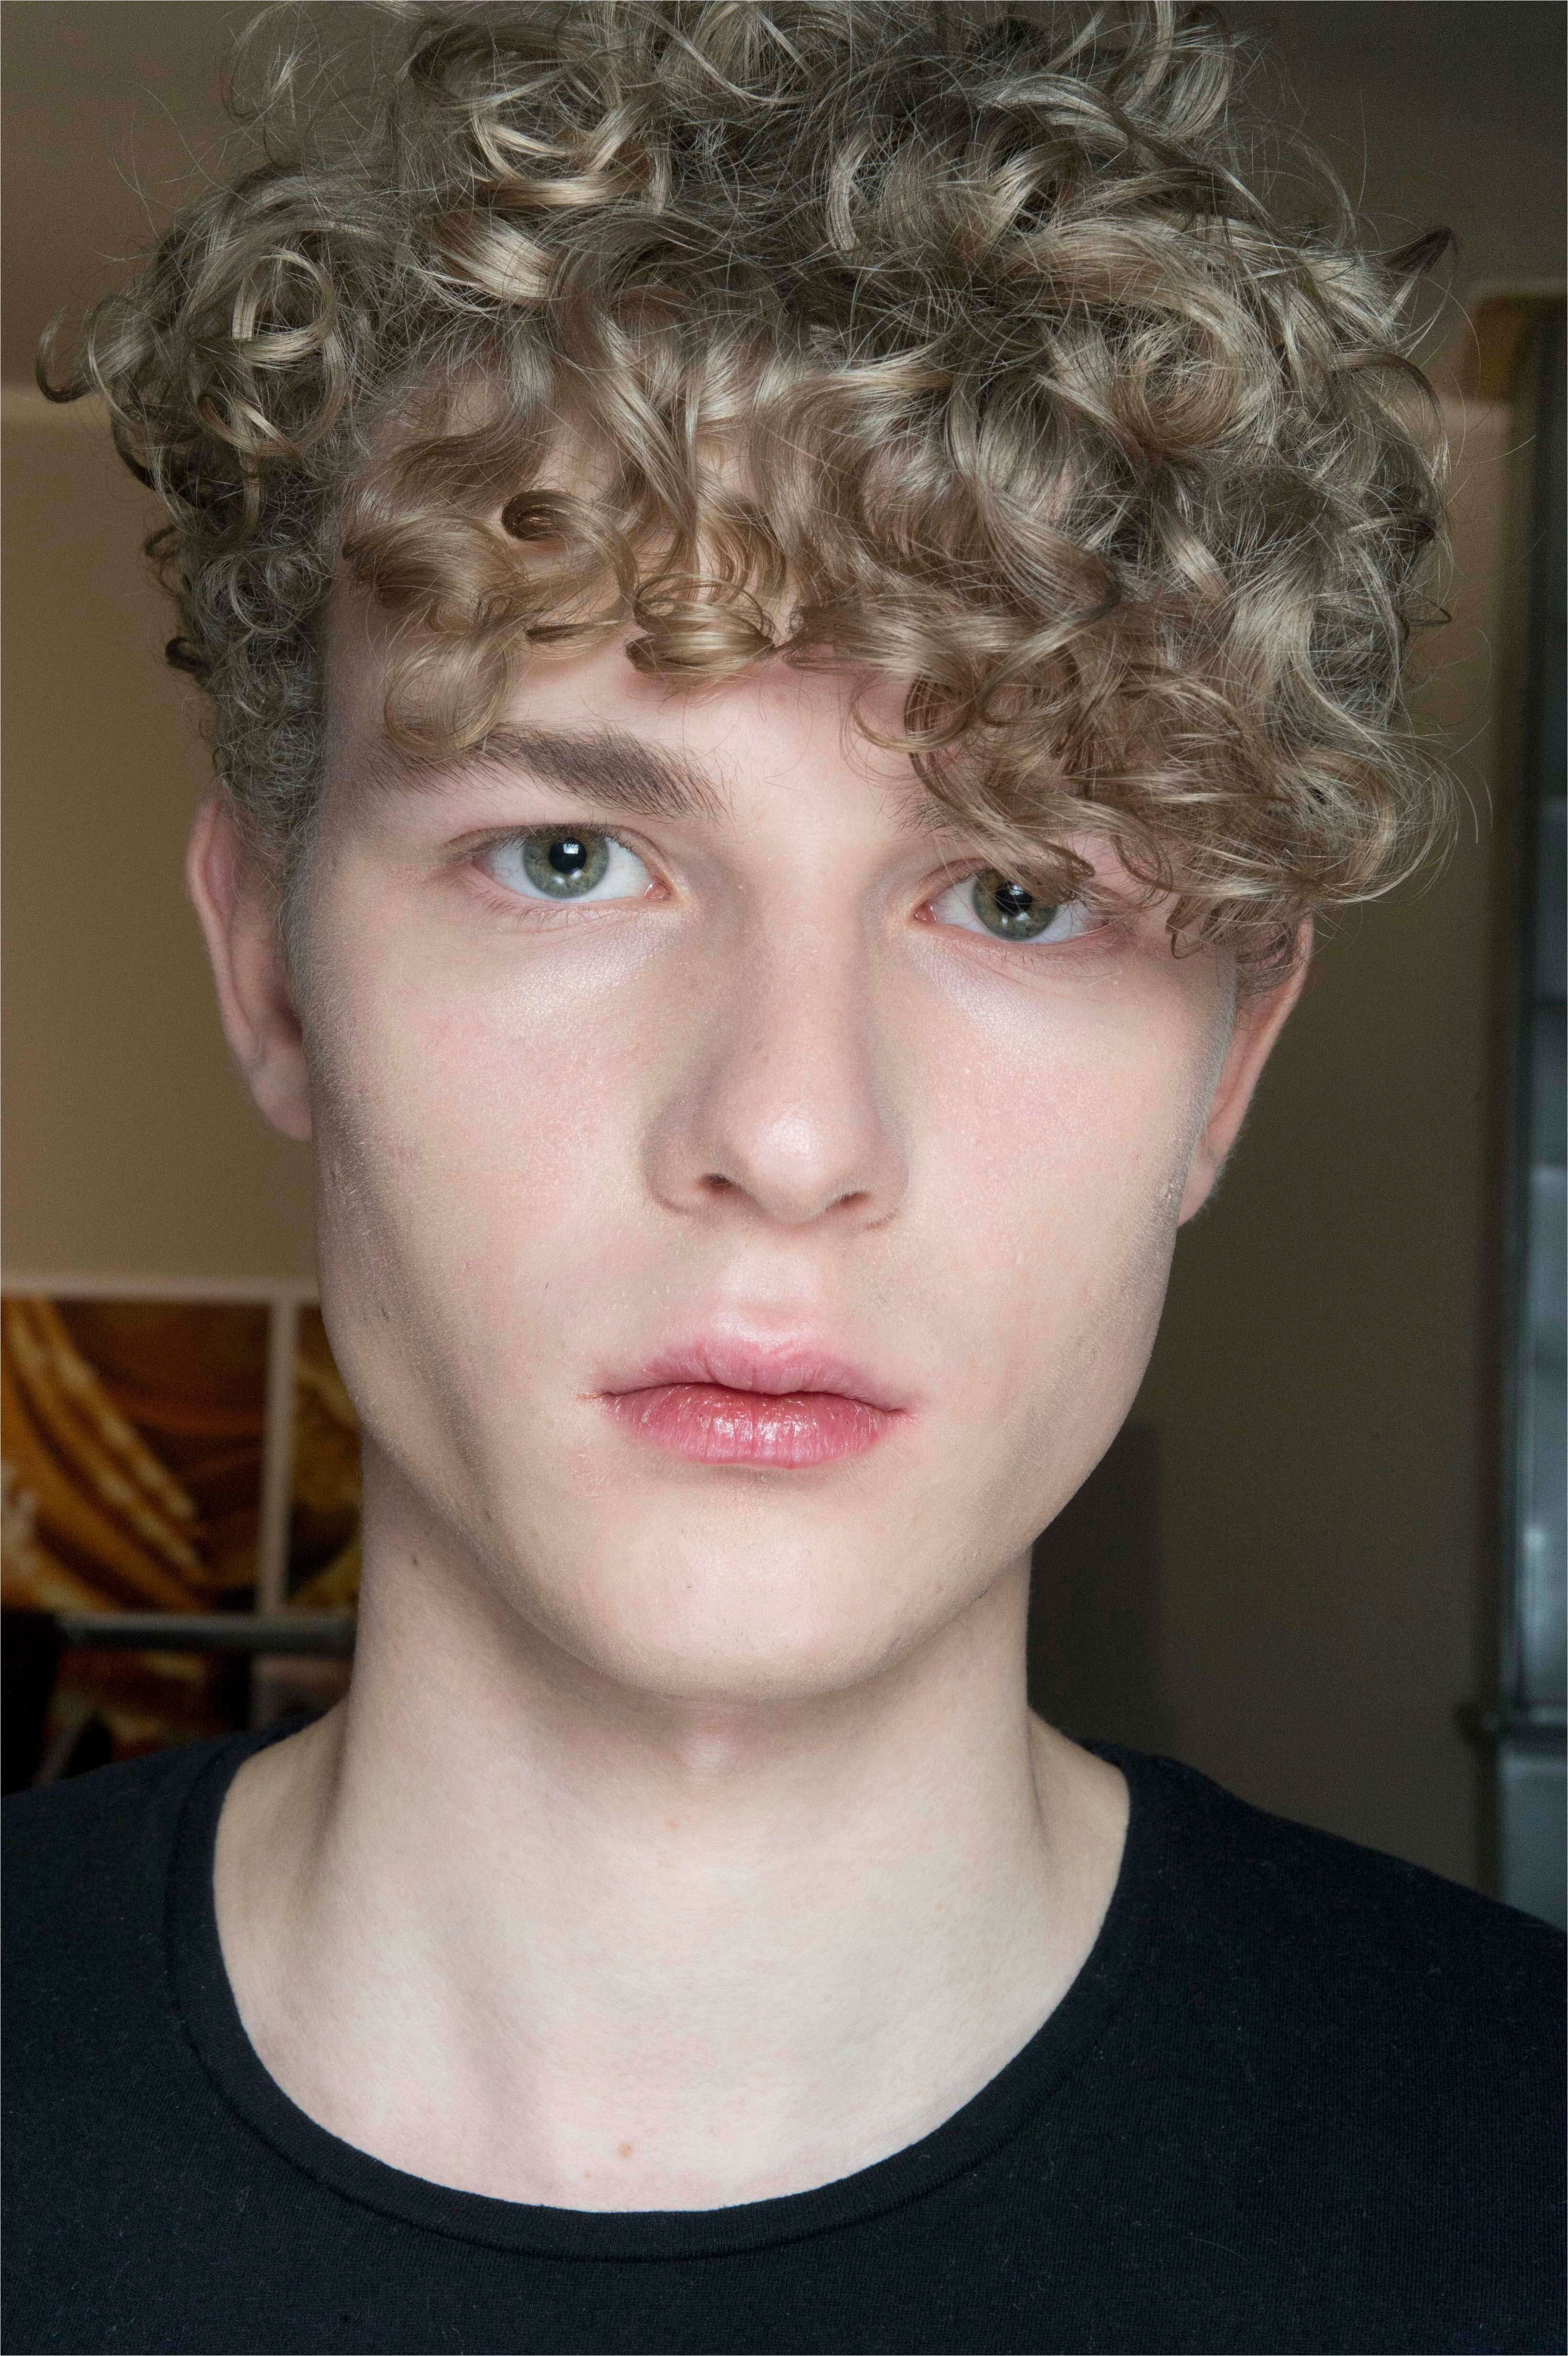 Curly Hairstyles For Men Trending Right Now Special Short Curly Haircut Men In 2020 Long Hair Styles Men Curly Hair Men Short Hair Styles